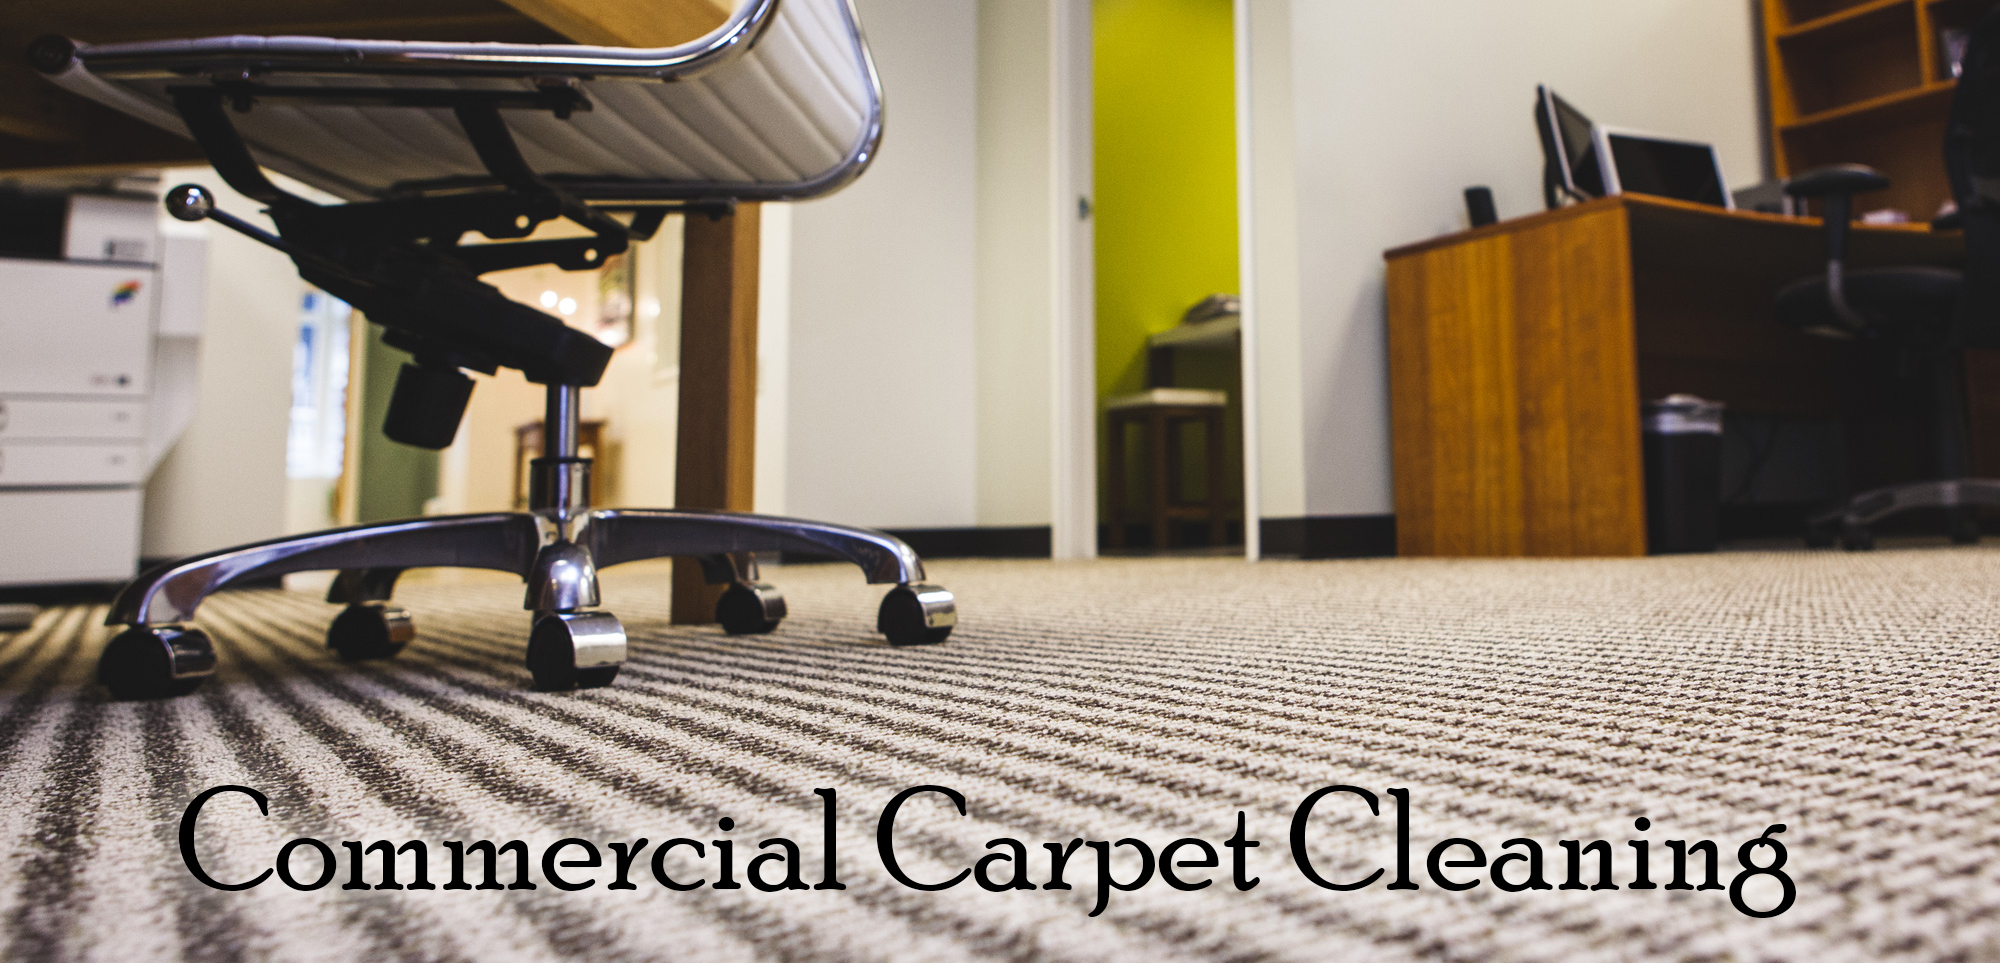 Commercial Carpet Cleaning Services in Dartmouth